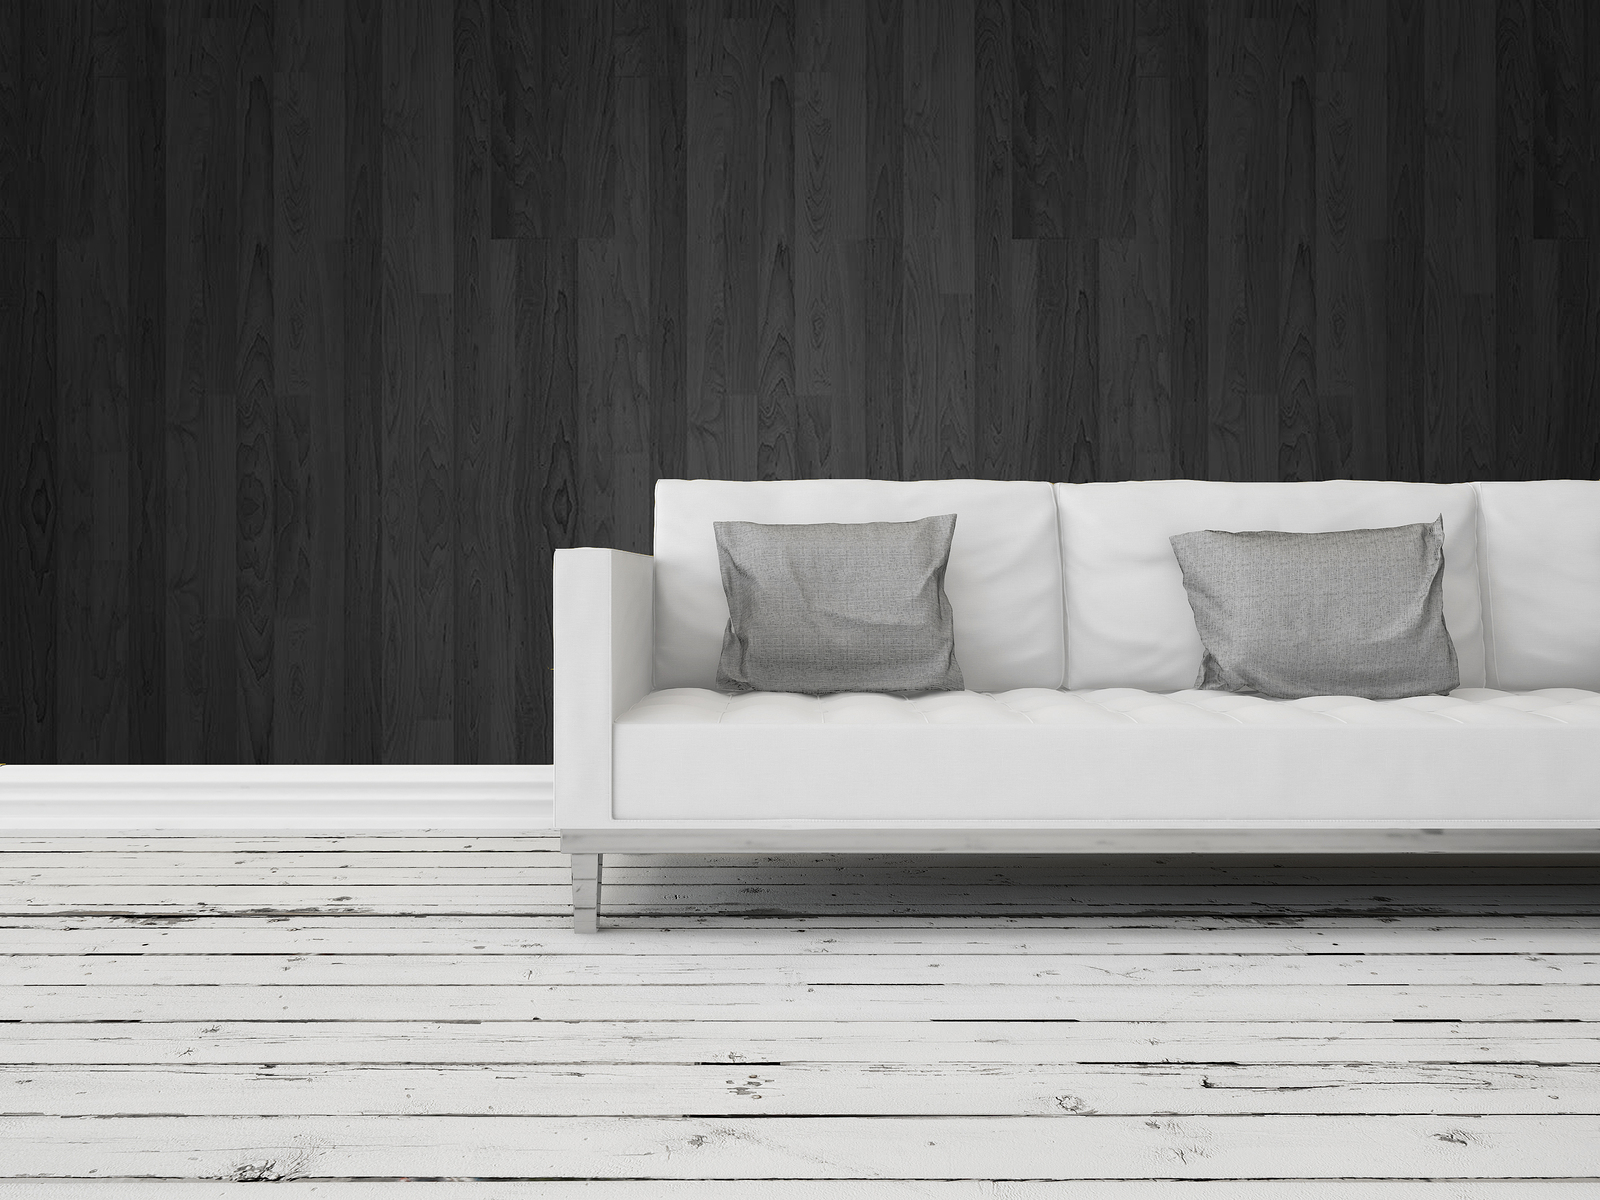 Black and white interior decor background with a generic modern white sofa against a dark wall with grungy rustic weathered wooden white painted floor boards